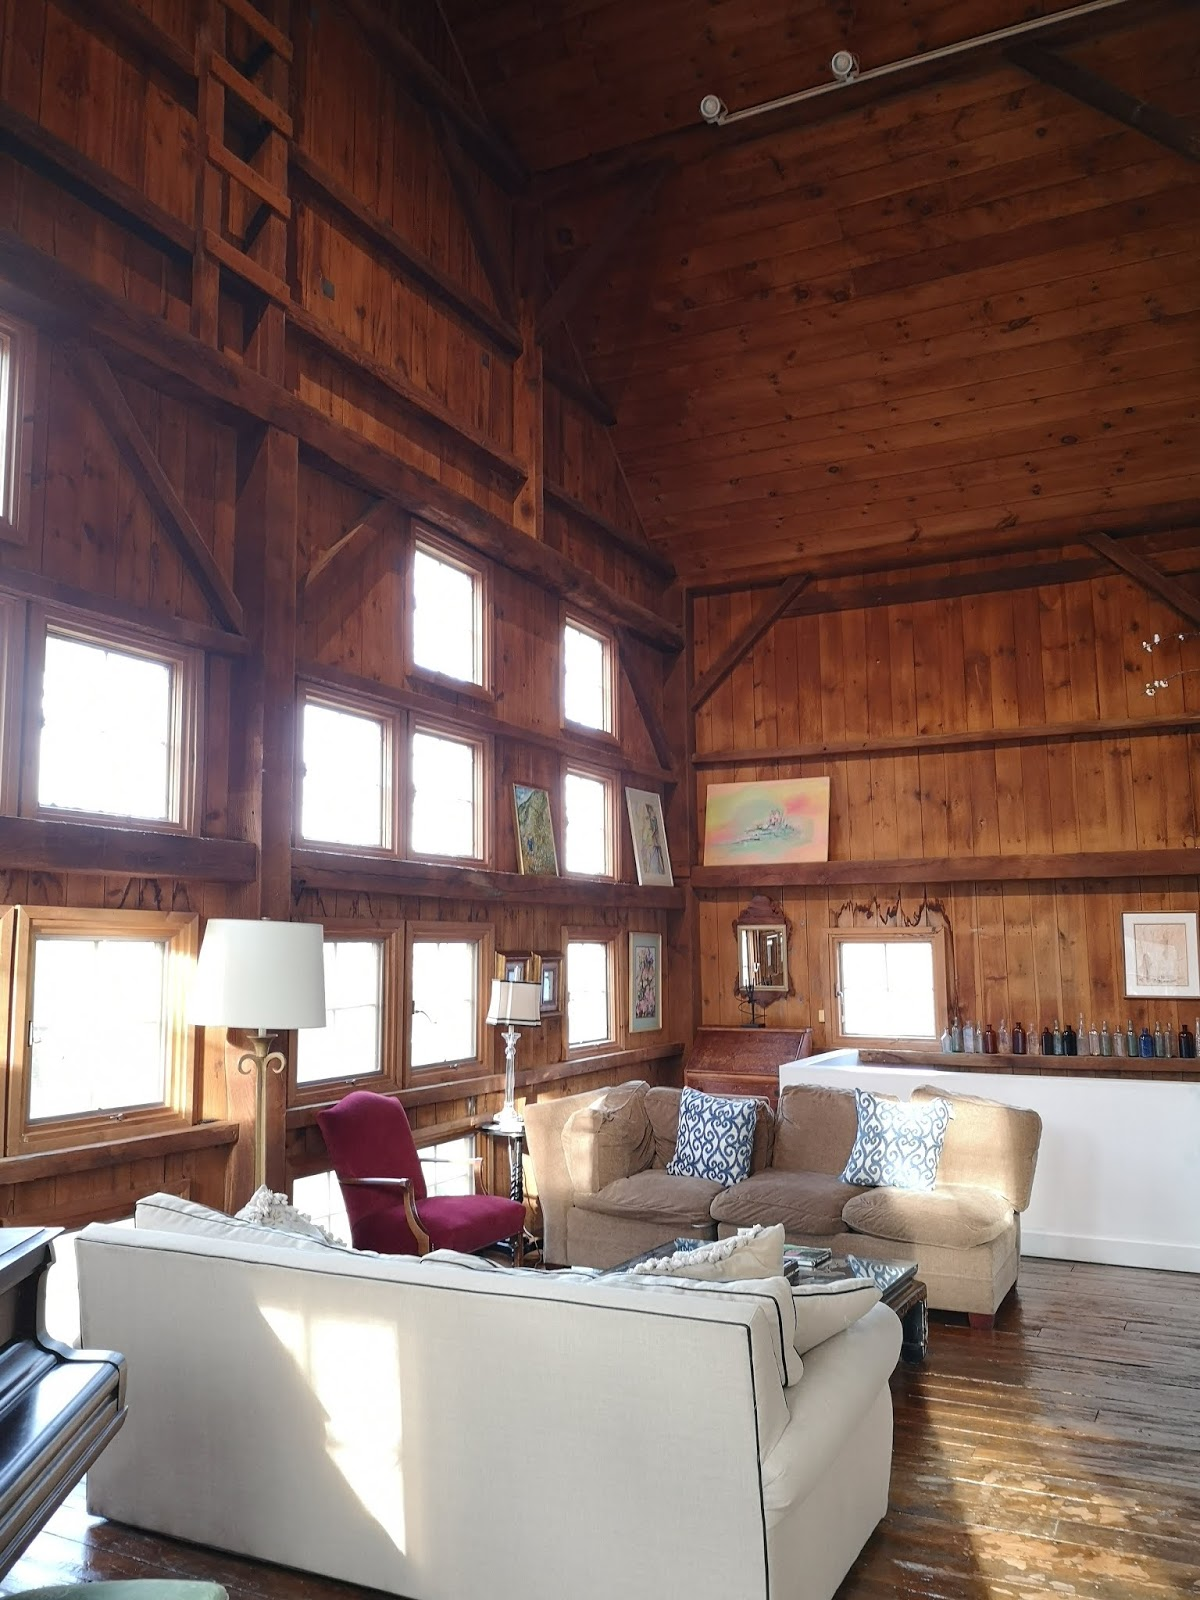 Converted Barn Airbnb in Fairfield, Connecticut